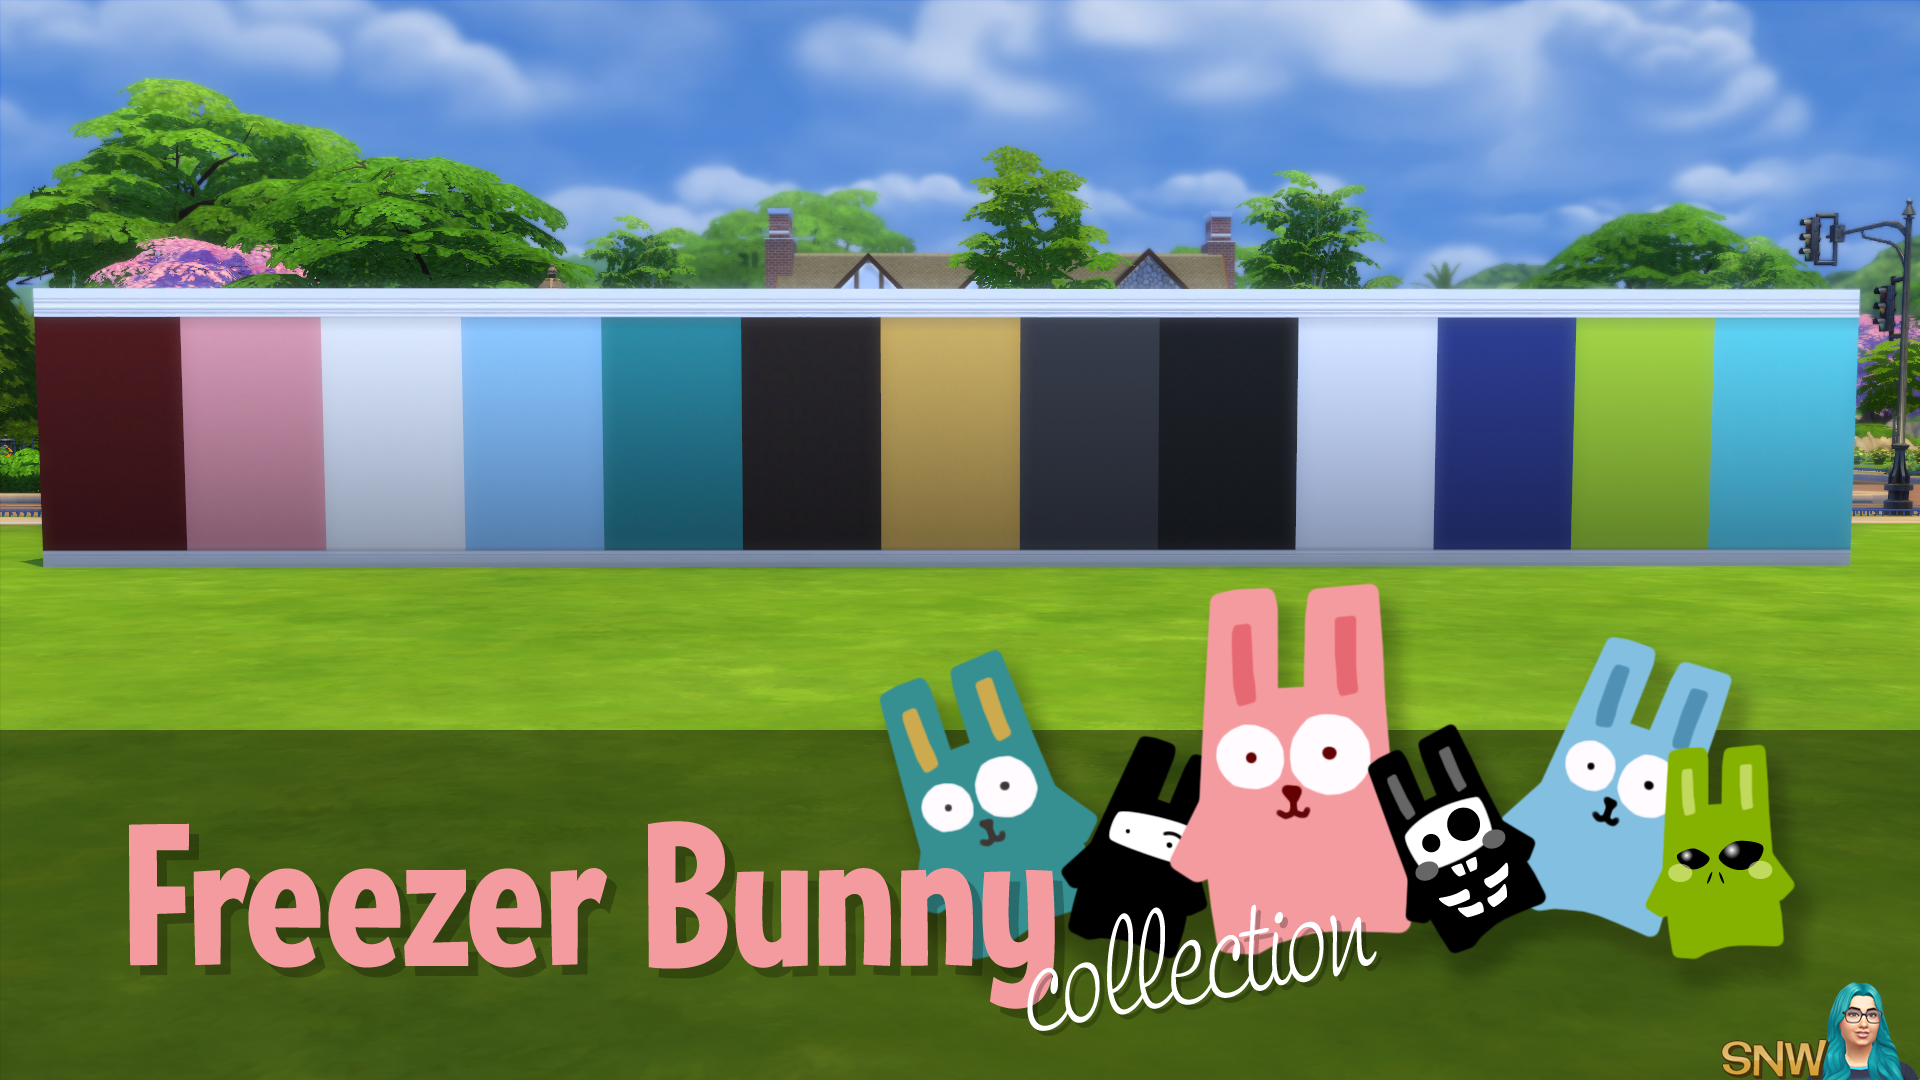 Freezer Bunny Collection Plain Wallpapers Snw